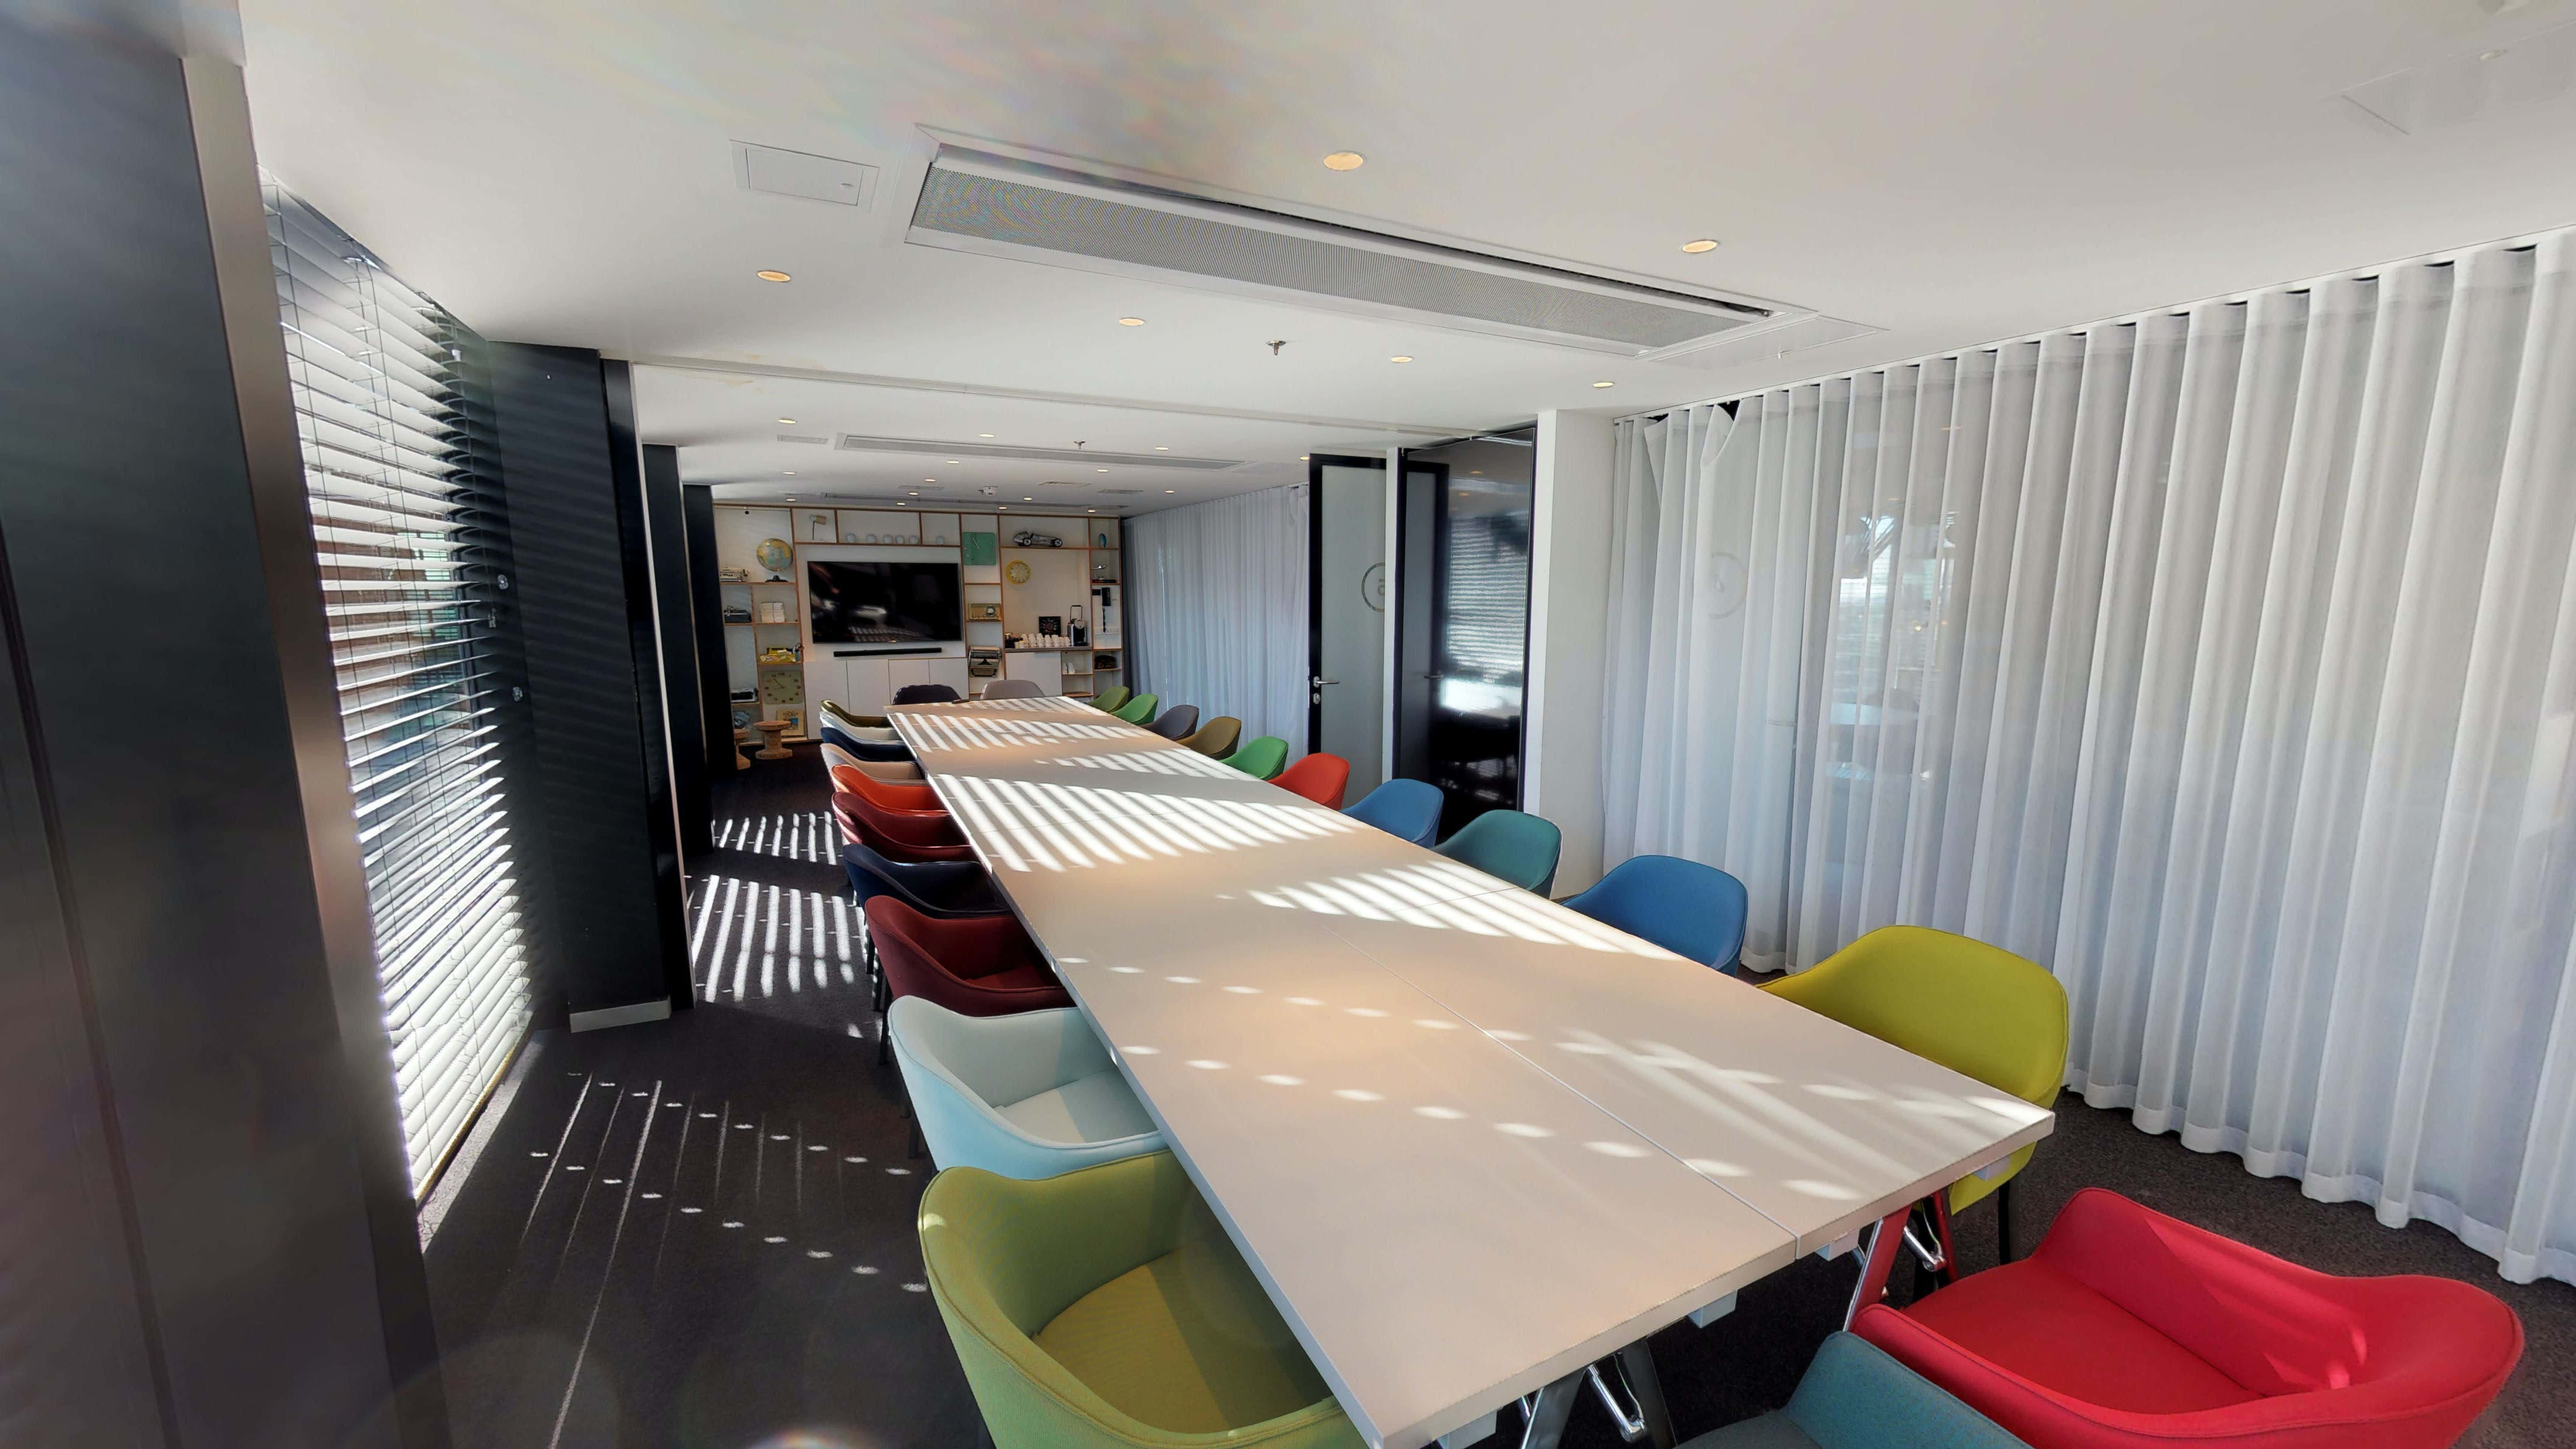 Meeting Room 9, societyM at citizenM